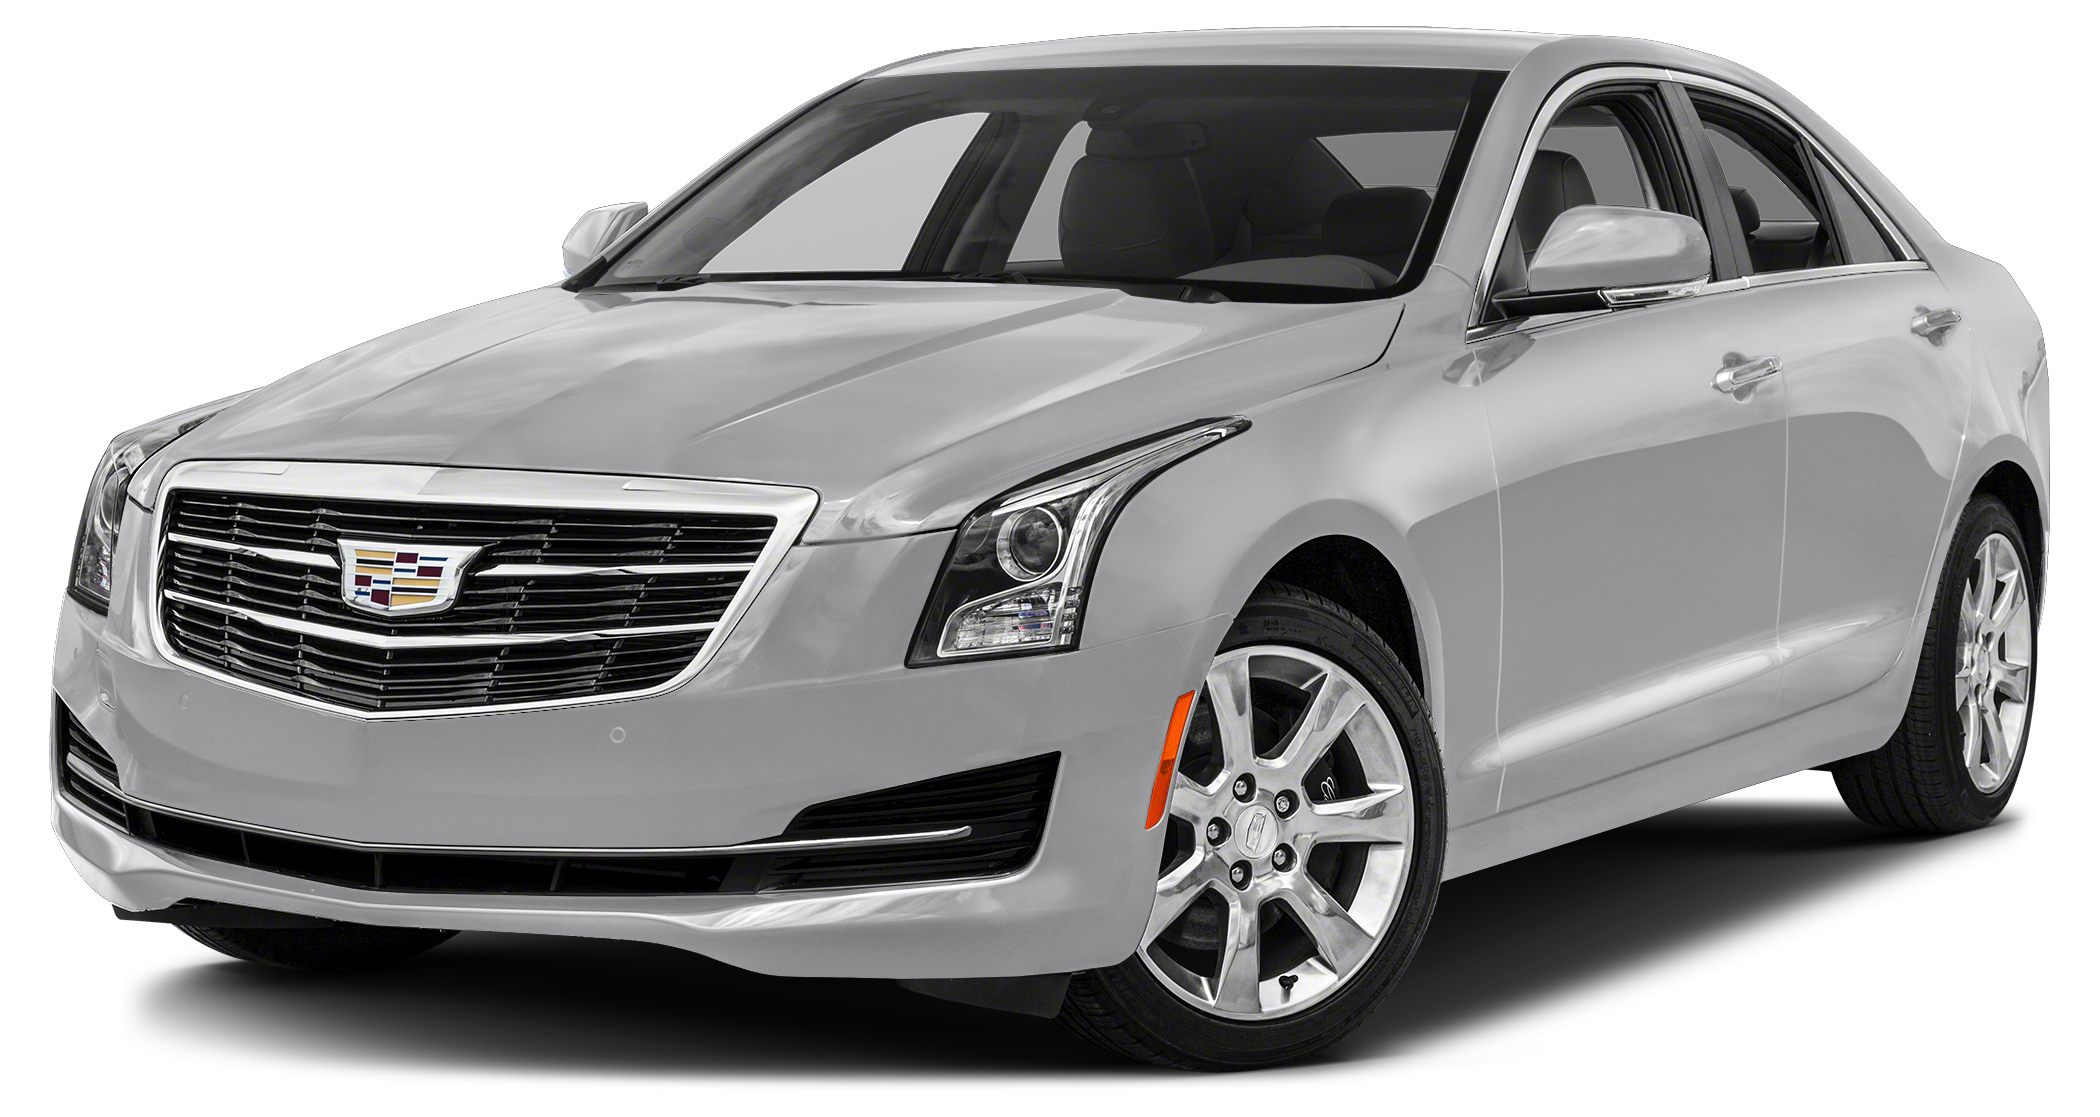 2017 Cadillac ATS 20 Turbo Luxury 2396 off MSRP Bradshaw Greer is honored to offer this good-l